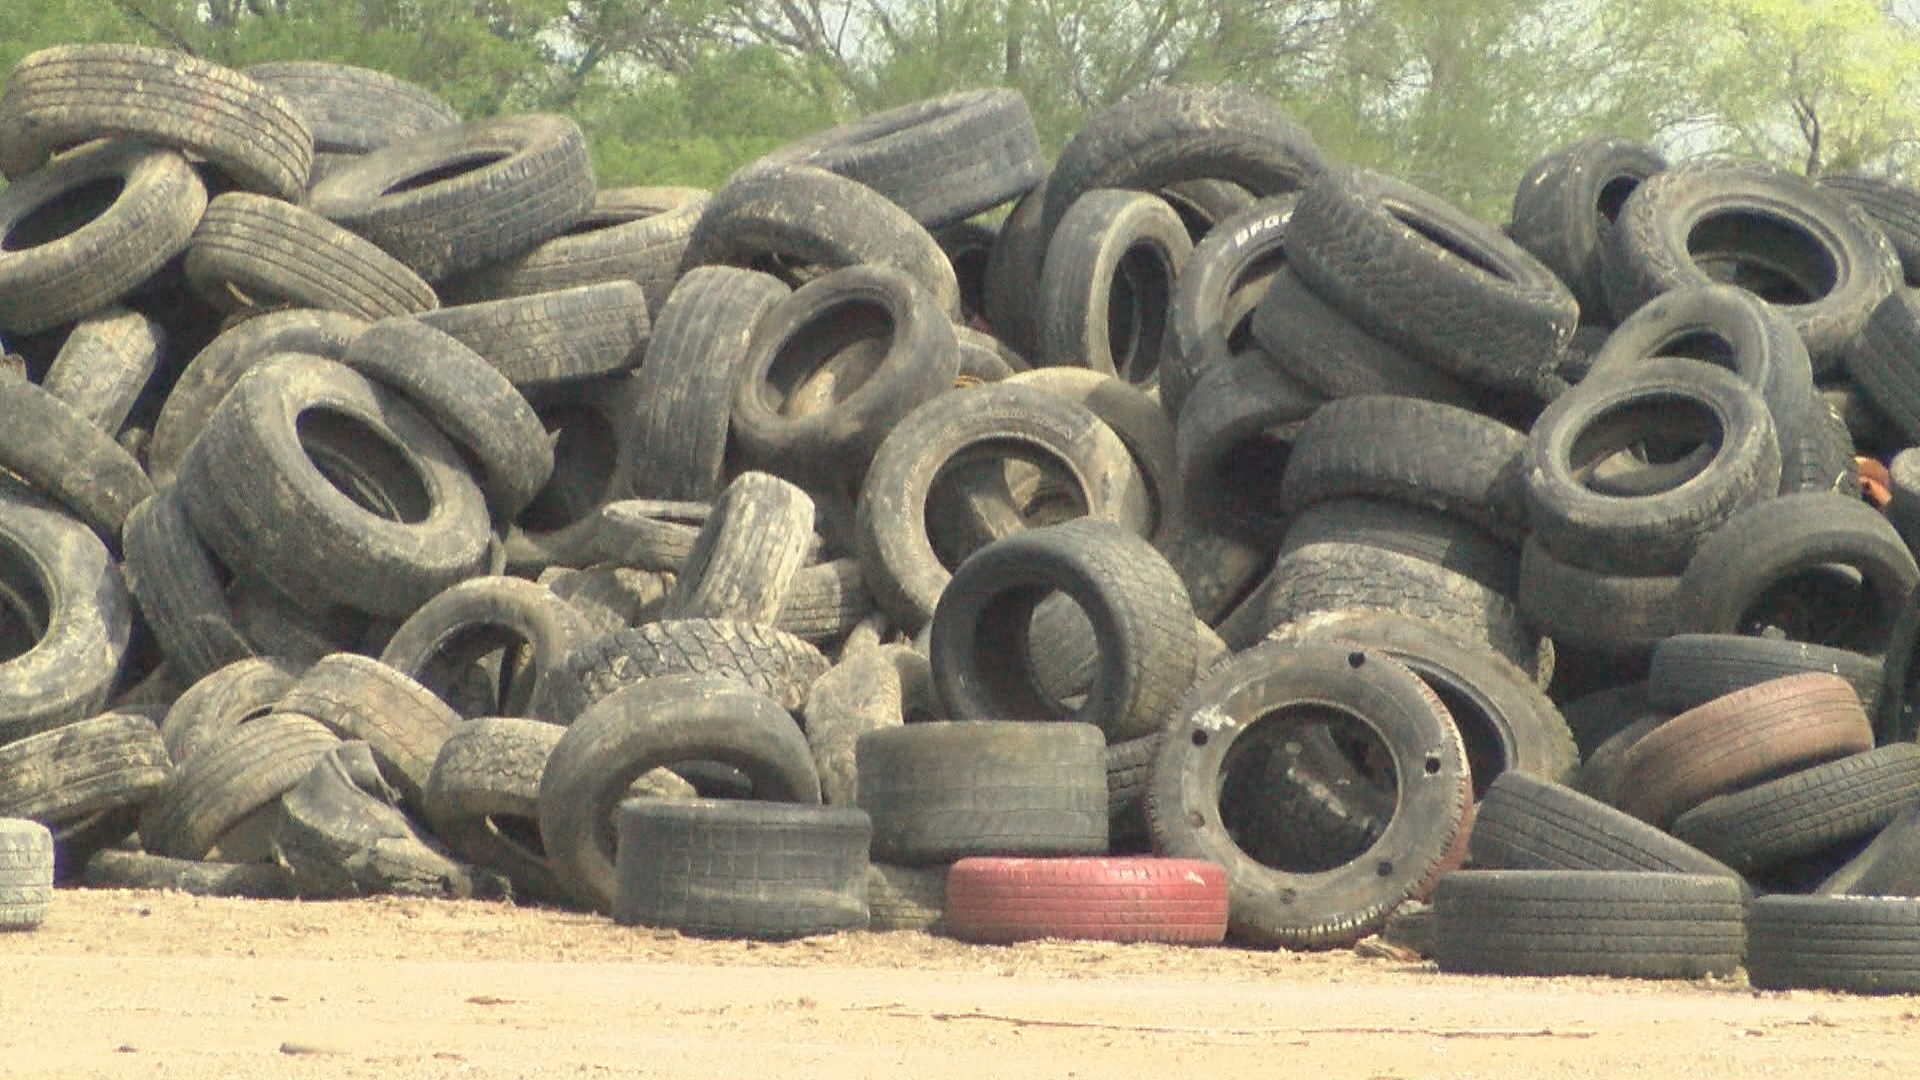 RAW TIRE DISPOSAL_frame_0_1555528087580.jpg.jpg